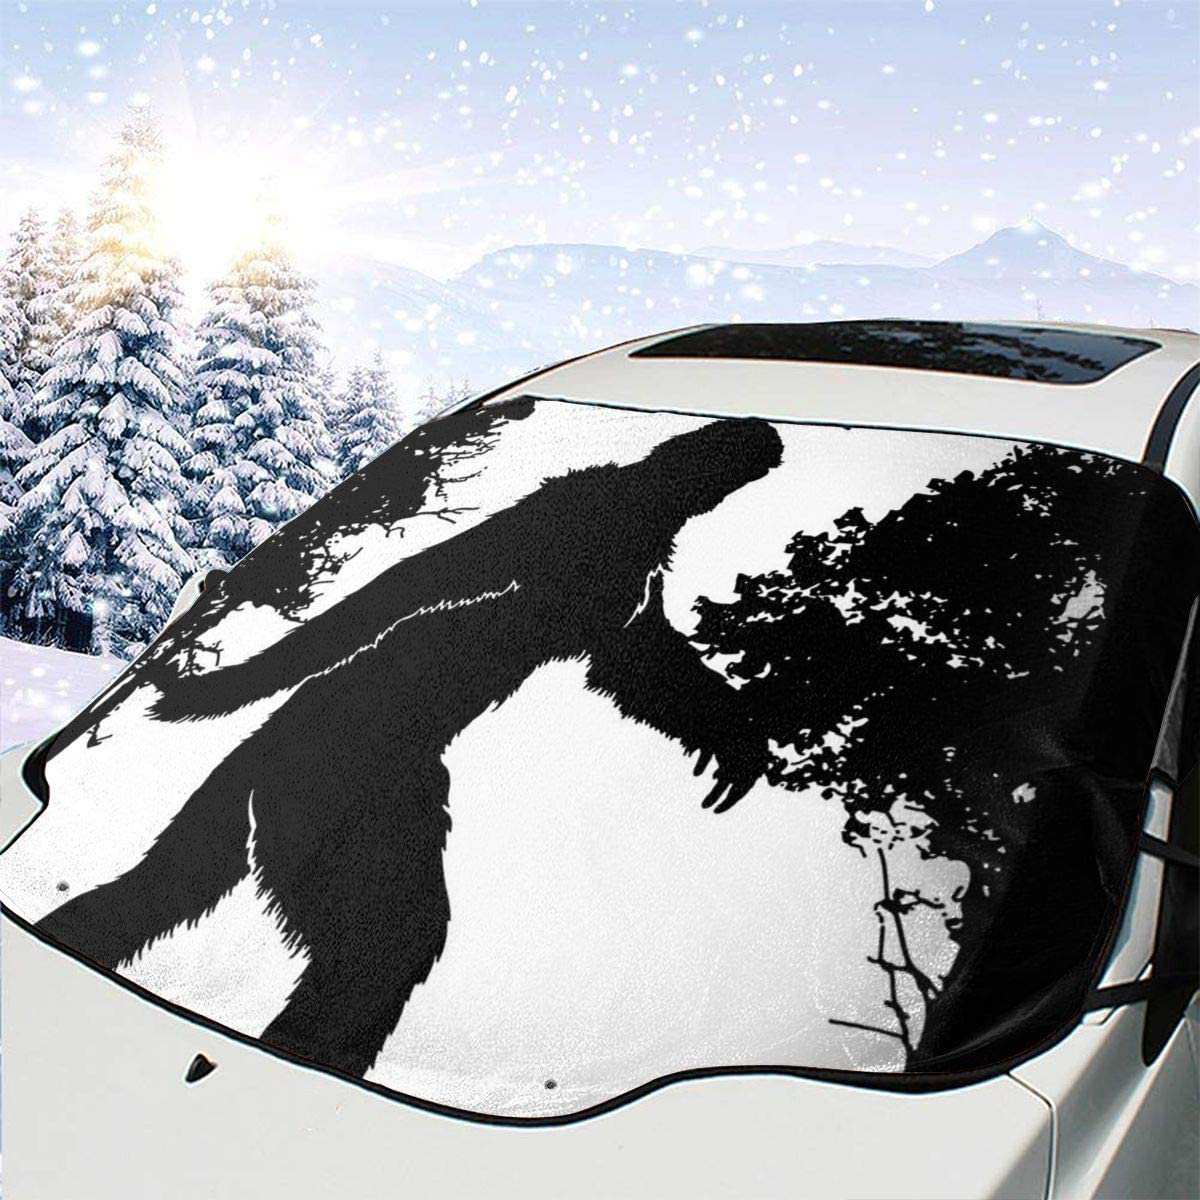 THONFIRE Car Front Window Windshield Snow Sun Shades Forest Gorilla Cover Waterproof Blocks Heat Keeps Your Vehicle Cool Visor Protector Automotive Autumn Heat Reflector